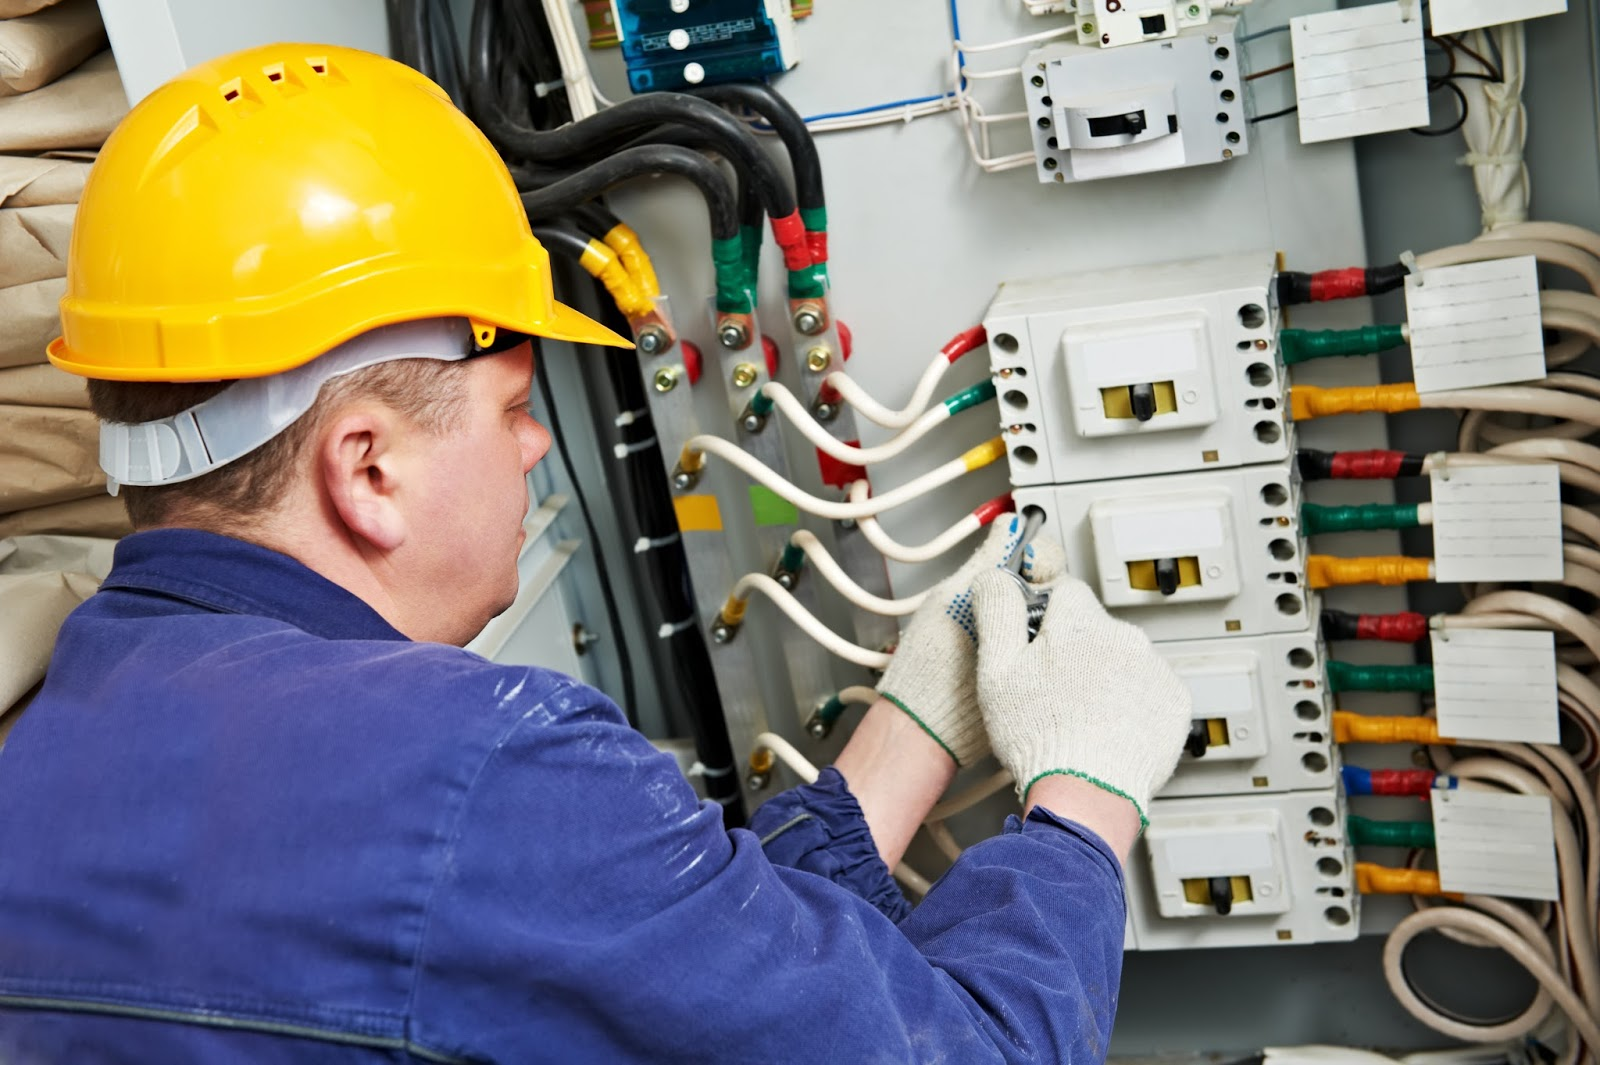 Works of repair,finishing and electrical installation